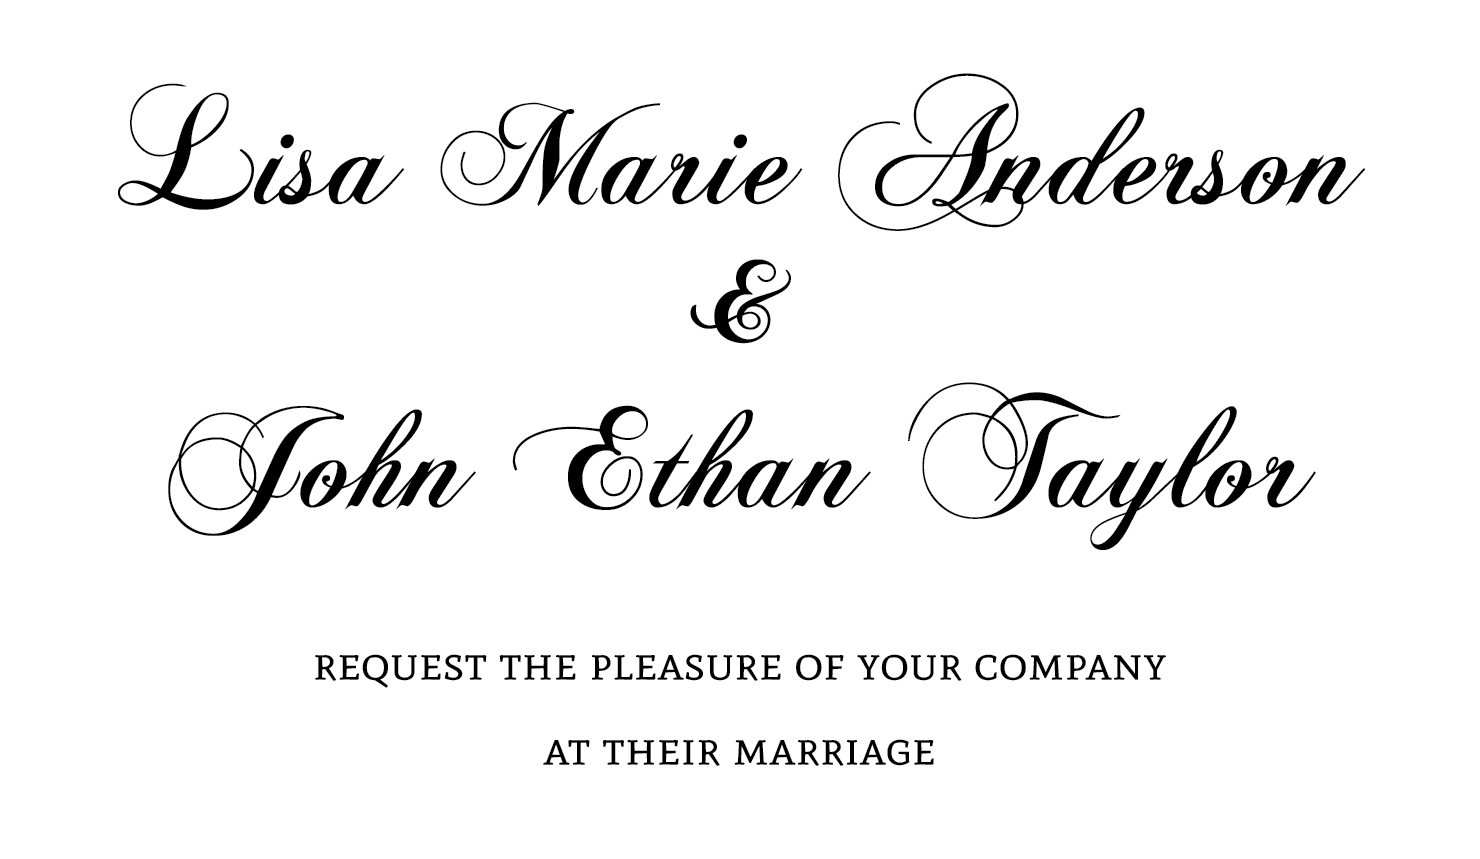 Fonts For Wedding Invitations: Best Wedding Invitation Fonts